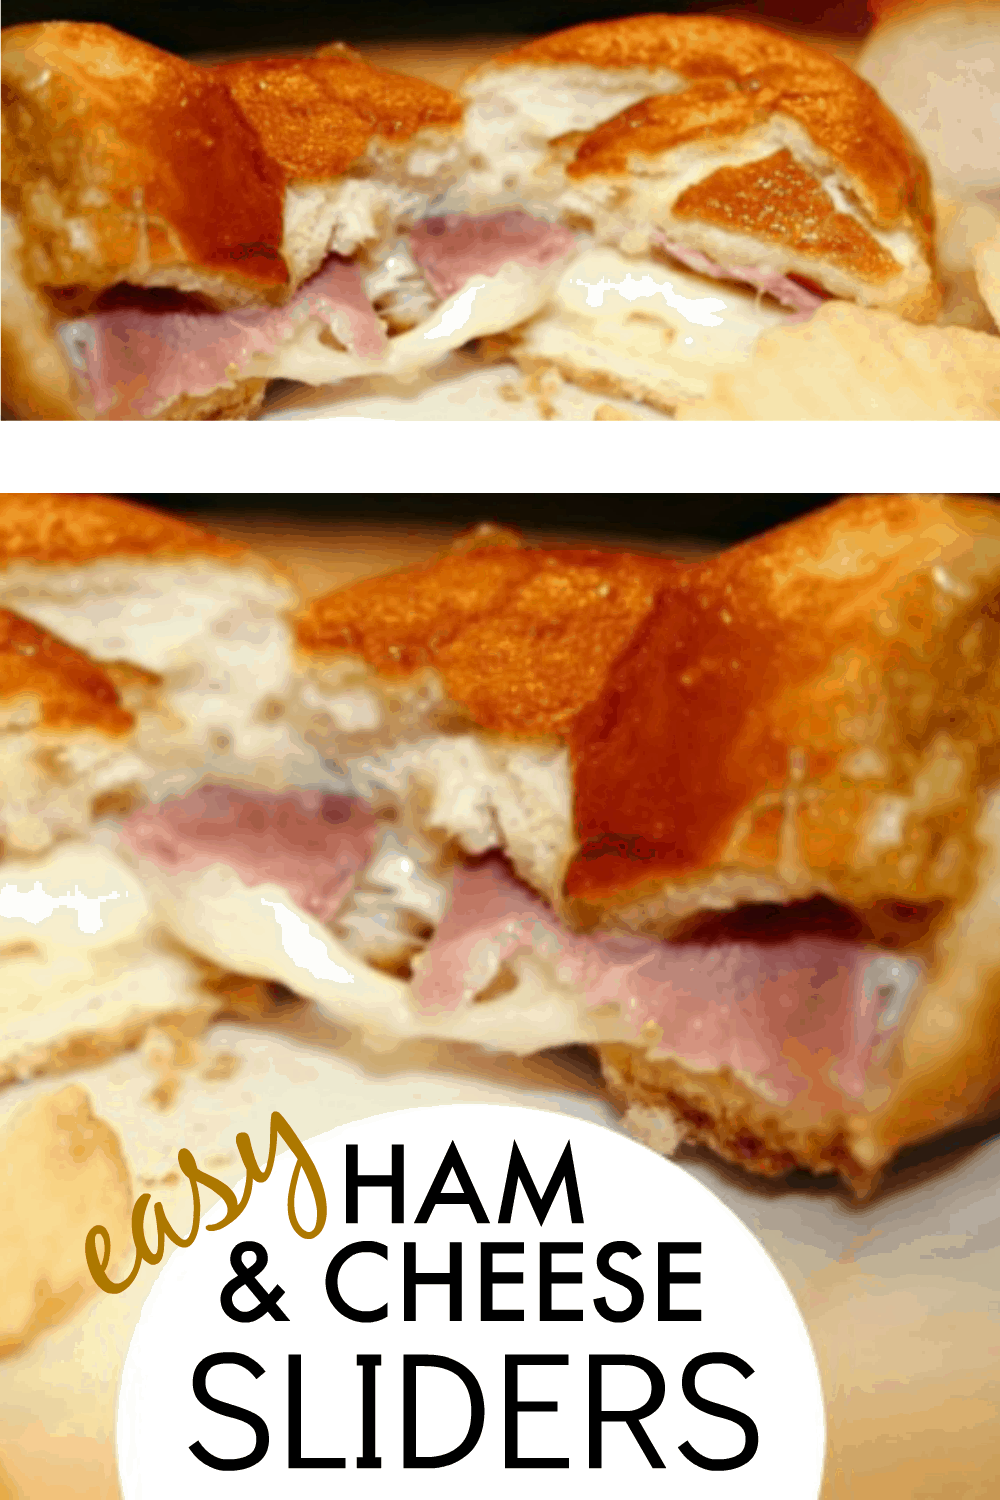 Easy Ham and Cheese Sliders text over a plate with baked ham and cheese sandwiches on a plate with potato chips